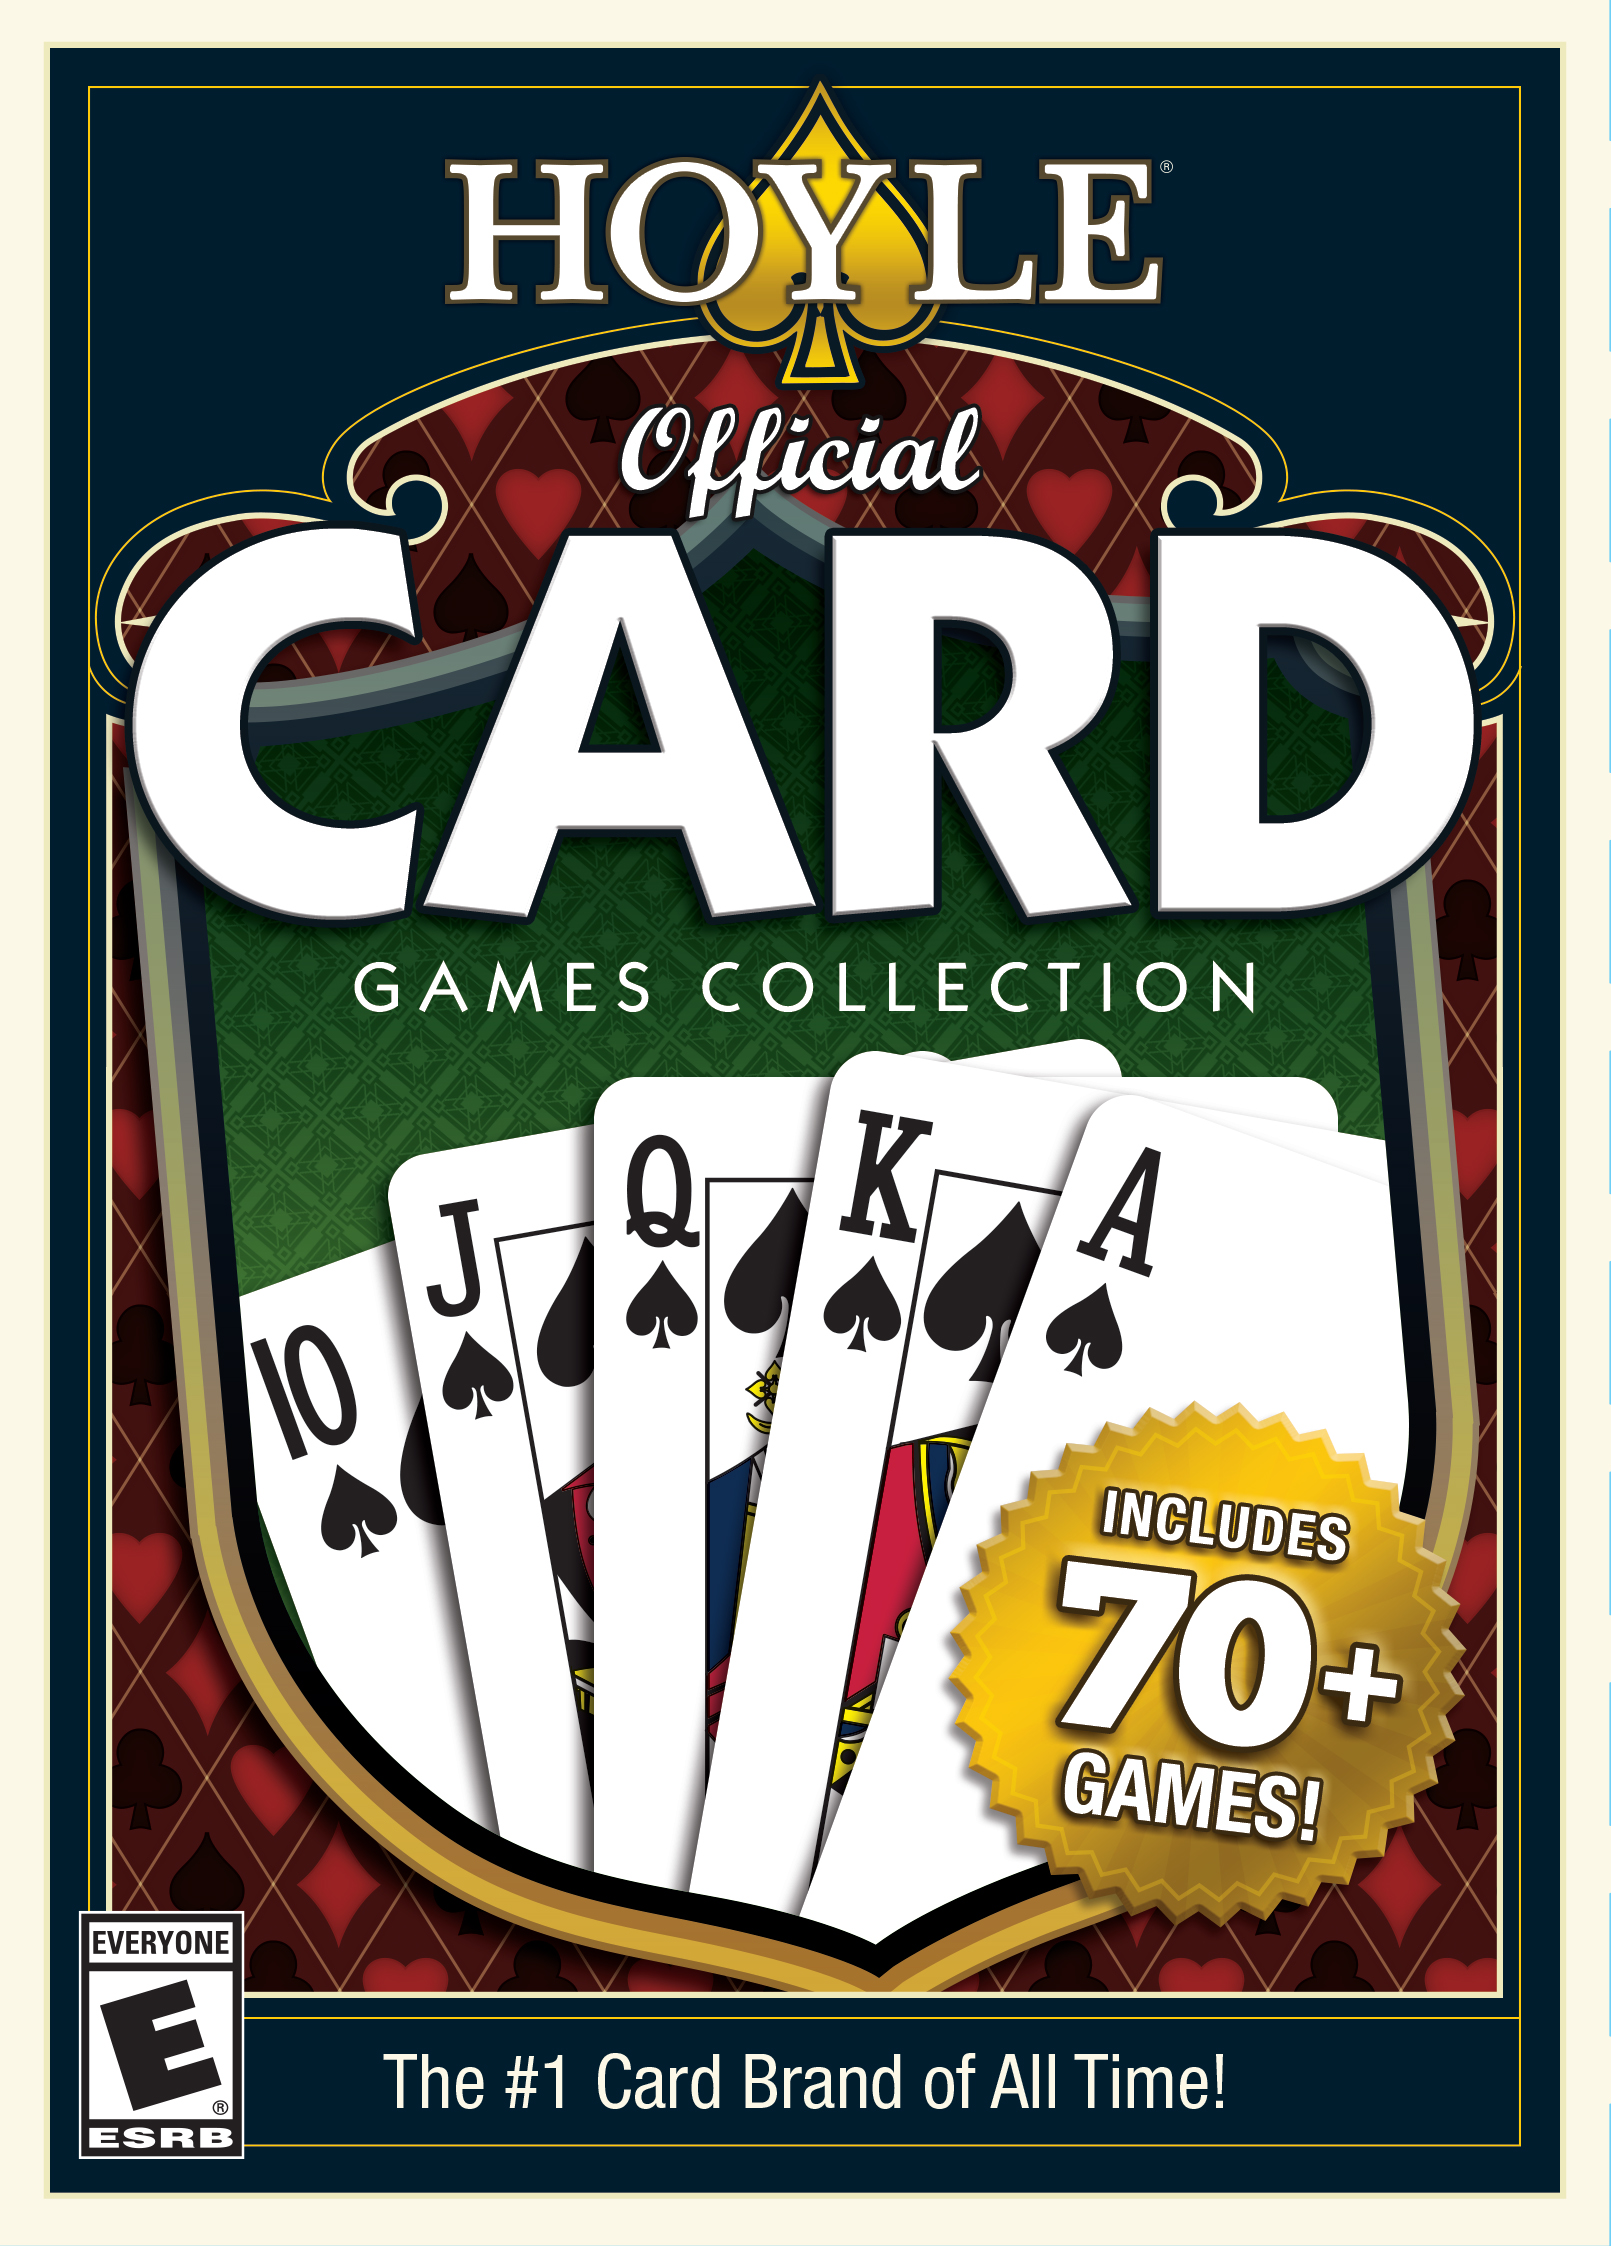 (Hoyle Official Card Games (for Windows))